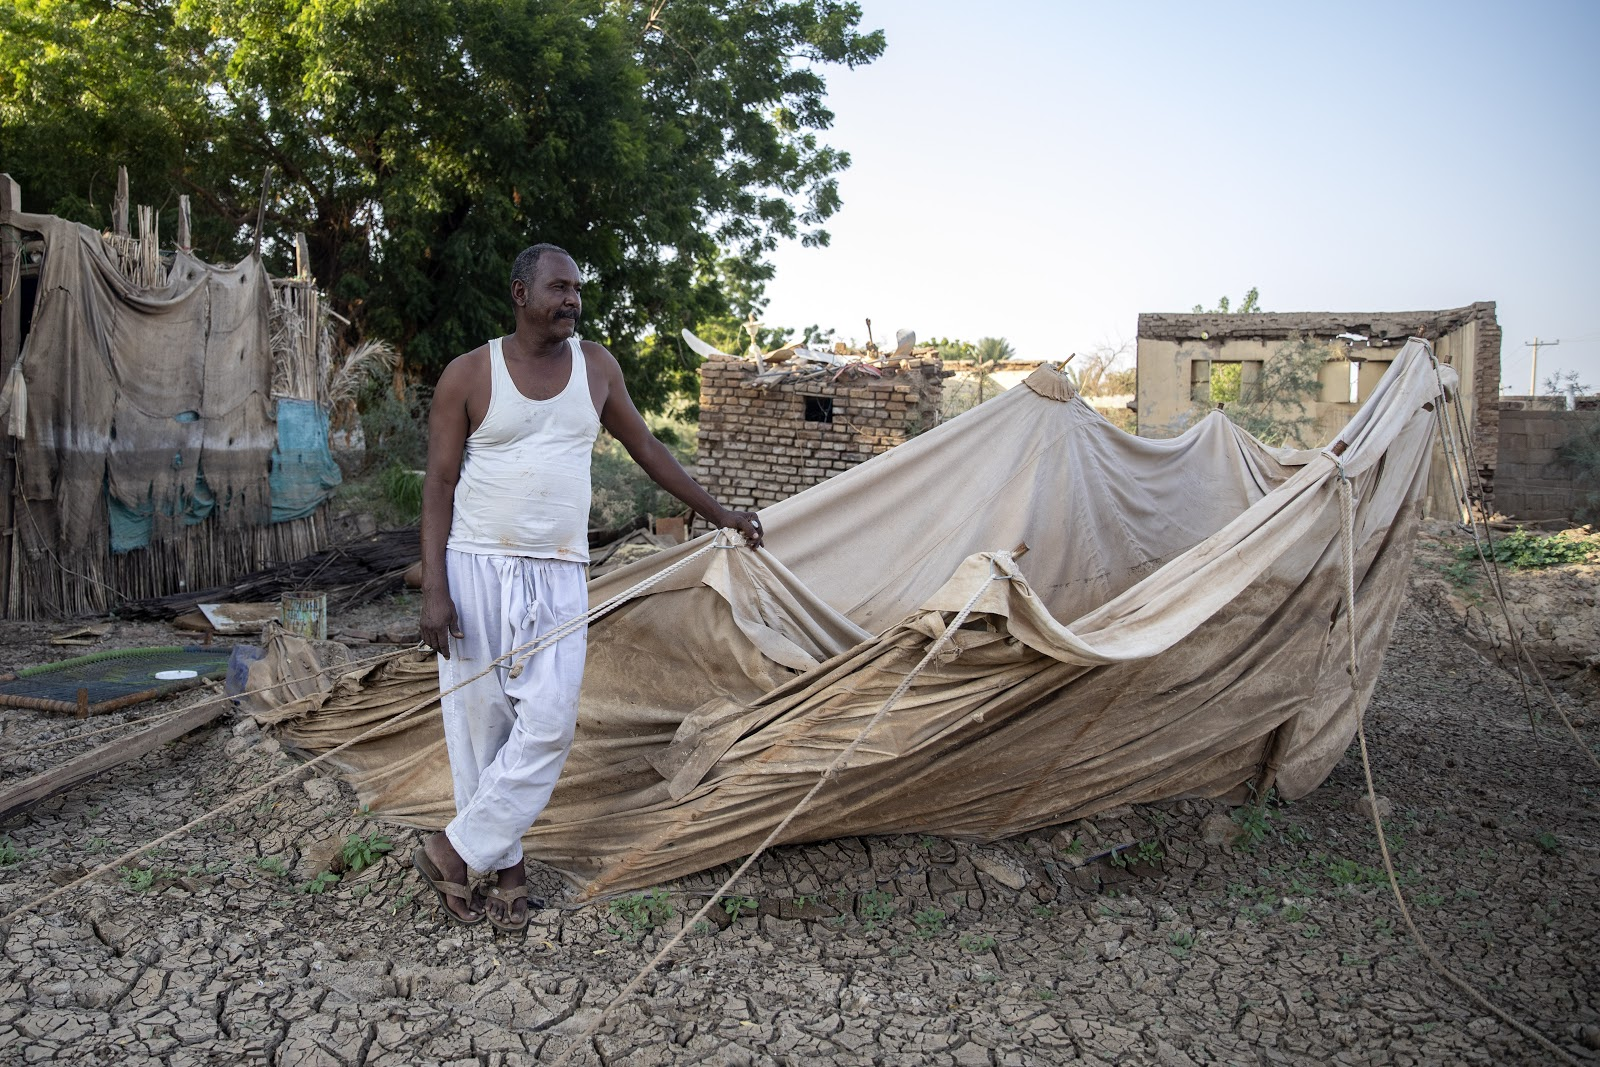 Nagy, one of the Wad Ramly villagers, next to his destroyed house and the tent he is living in after the floods